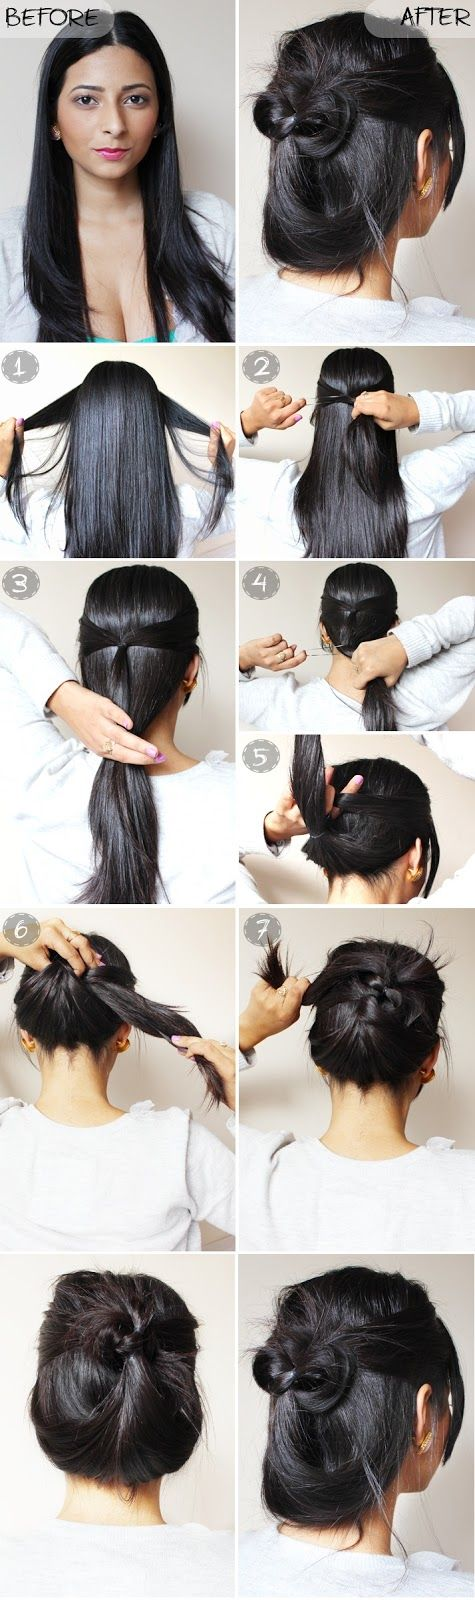 QUICK & EASY 2 MINUTE CASUAL UPDO |    VISIT US FOR #HAIRSTYLES AND #HAIR ADVICE  WWW.UKHAIRDRESSERS.COM